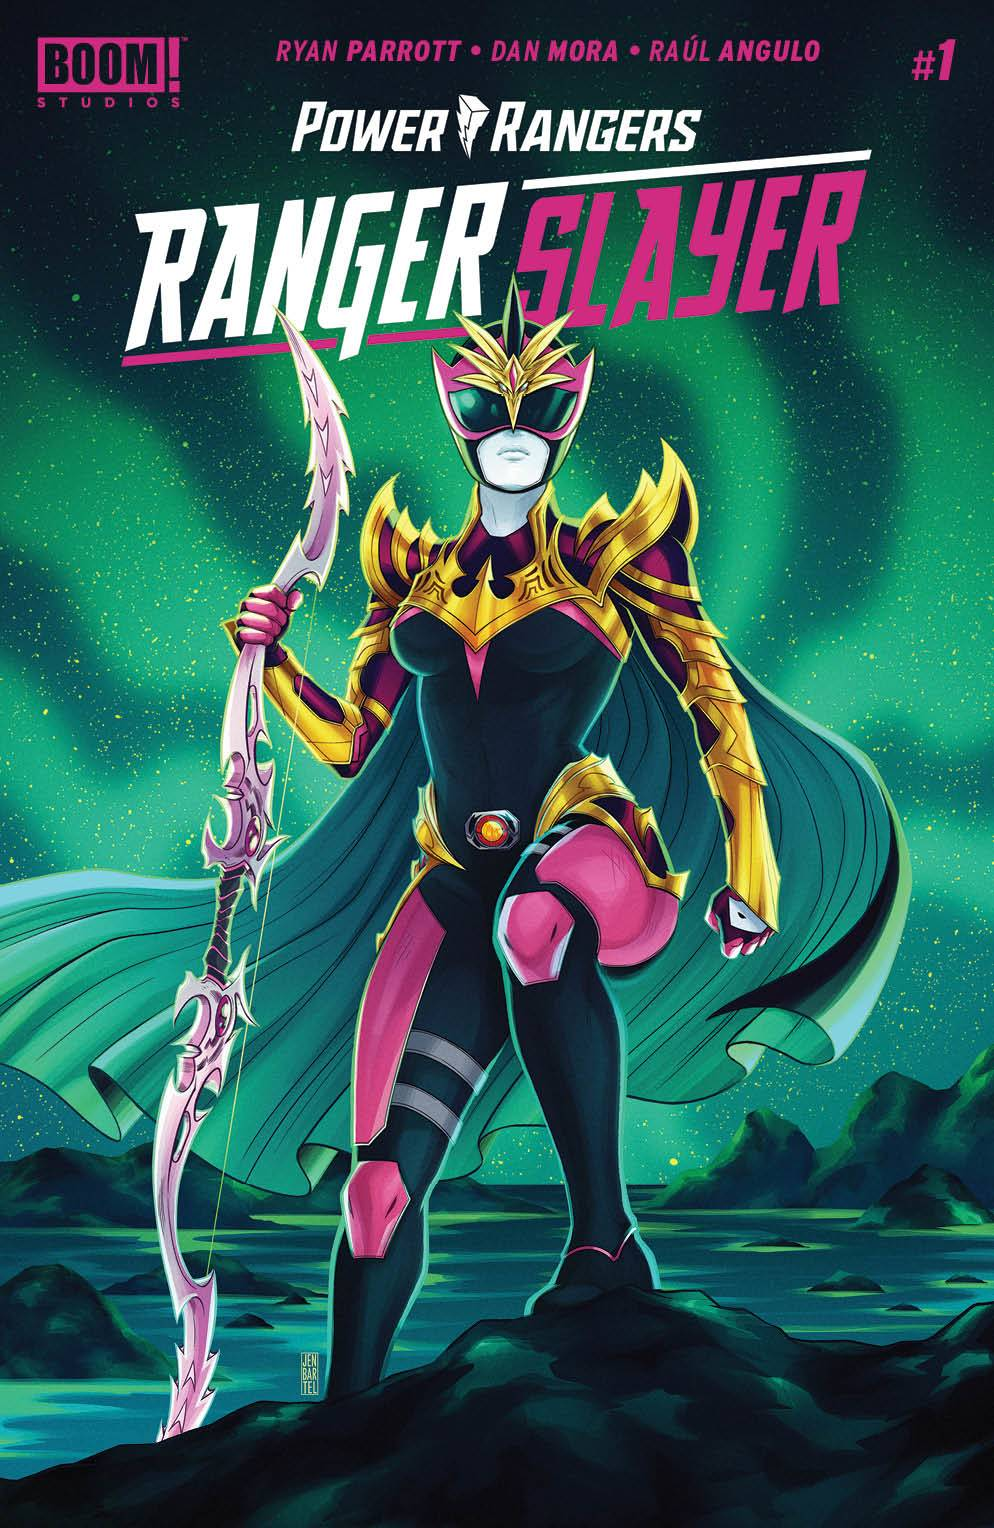 POWER RANGERS RANGER SLAYER #1 (2ND PTG)